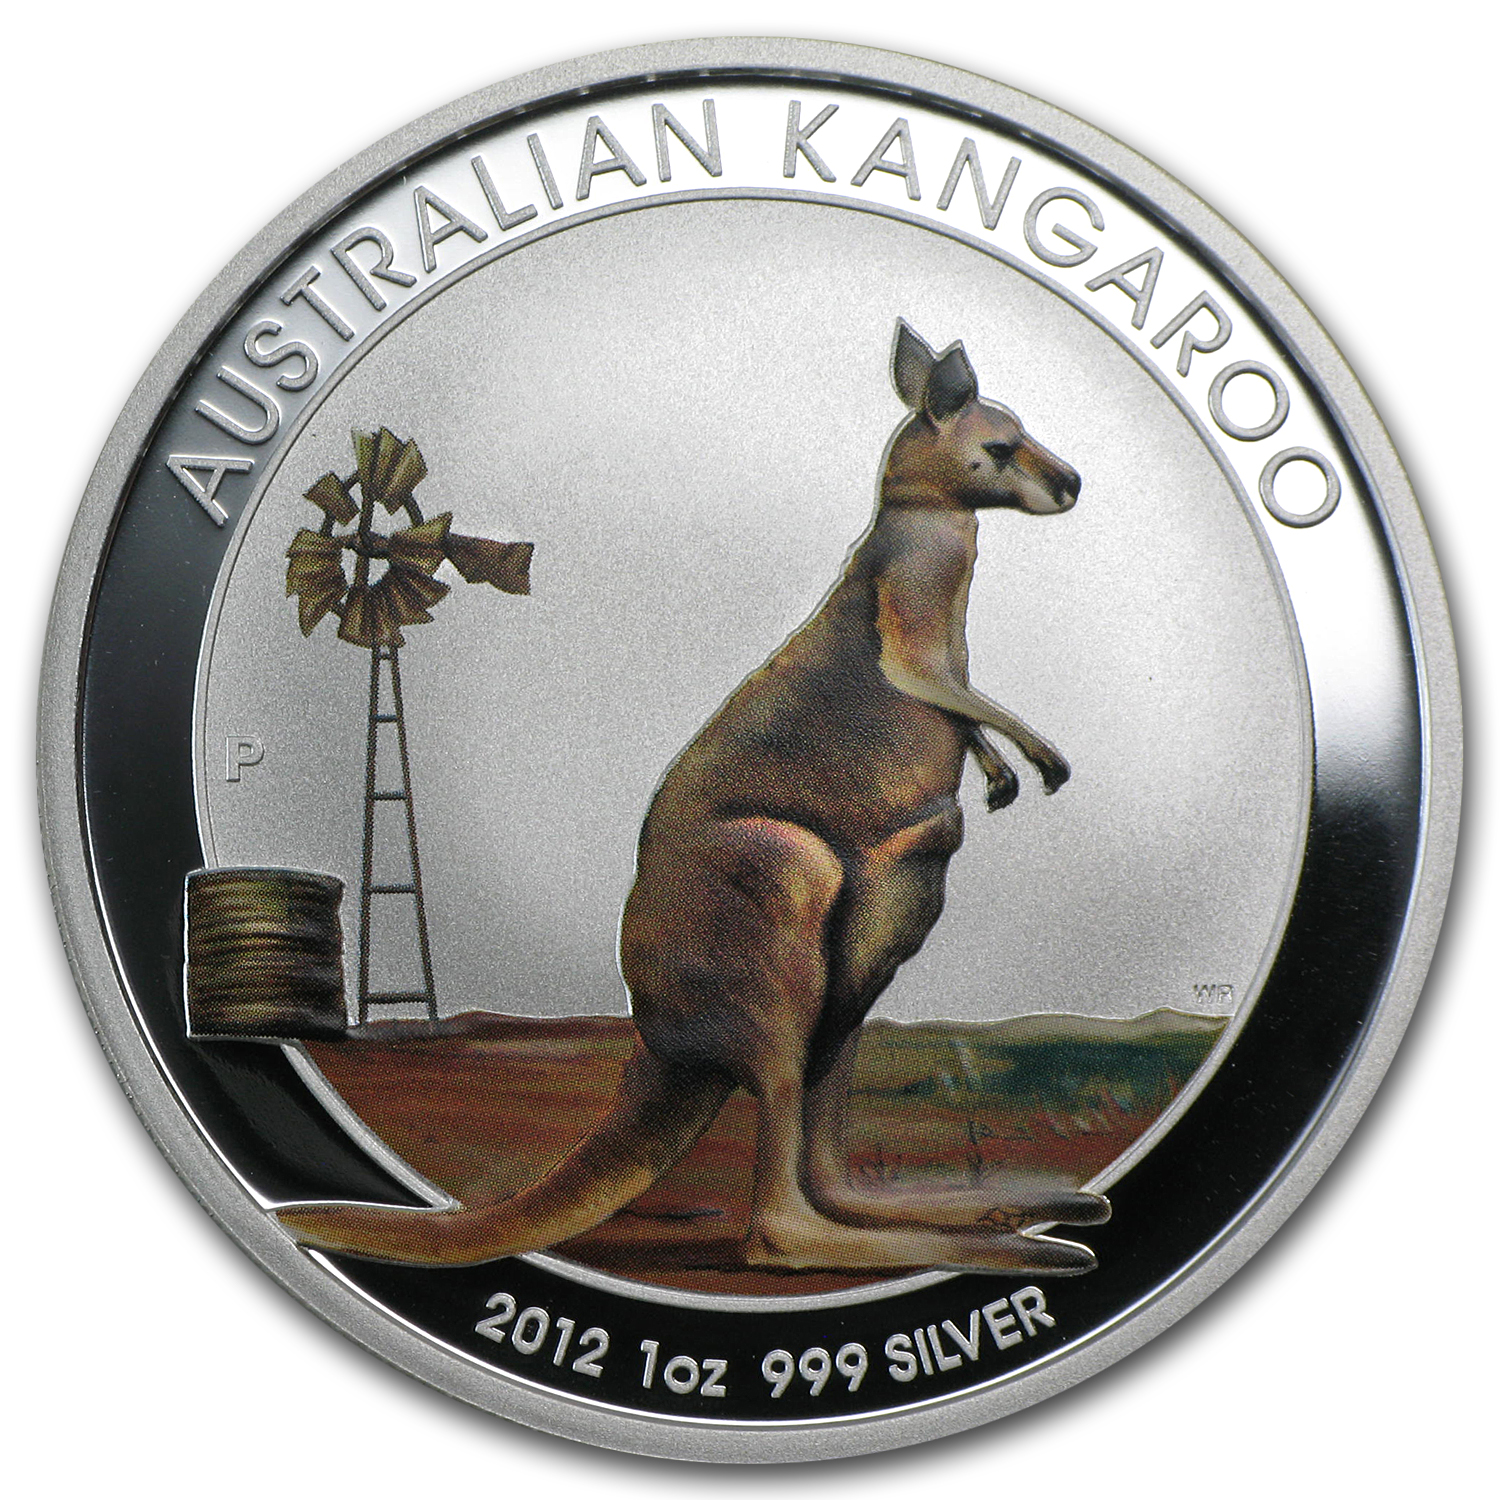 2012 Australia 1 oz Silver Kangaroo Colorized (In Capsule)